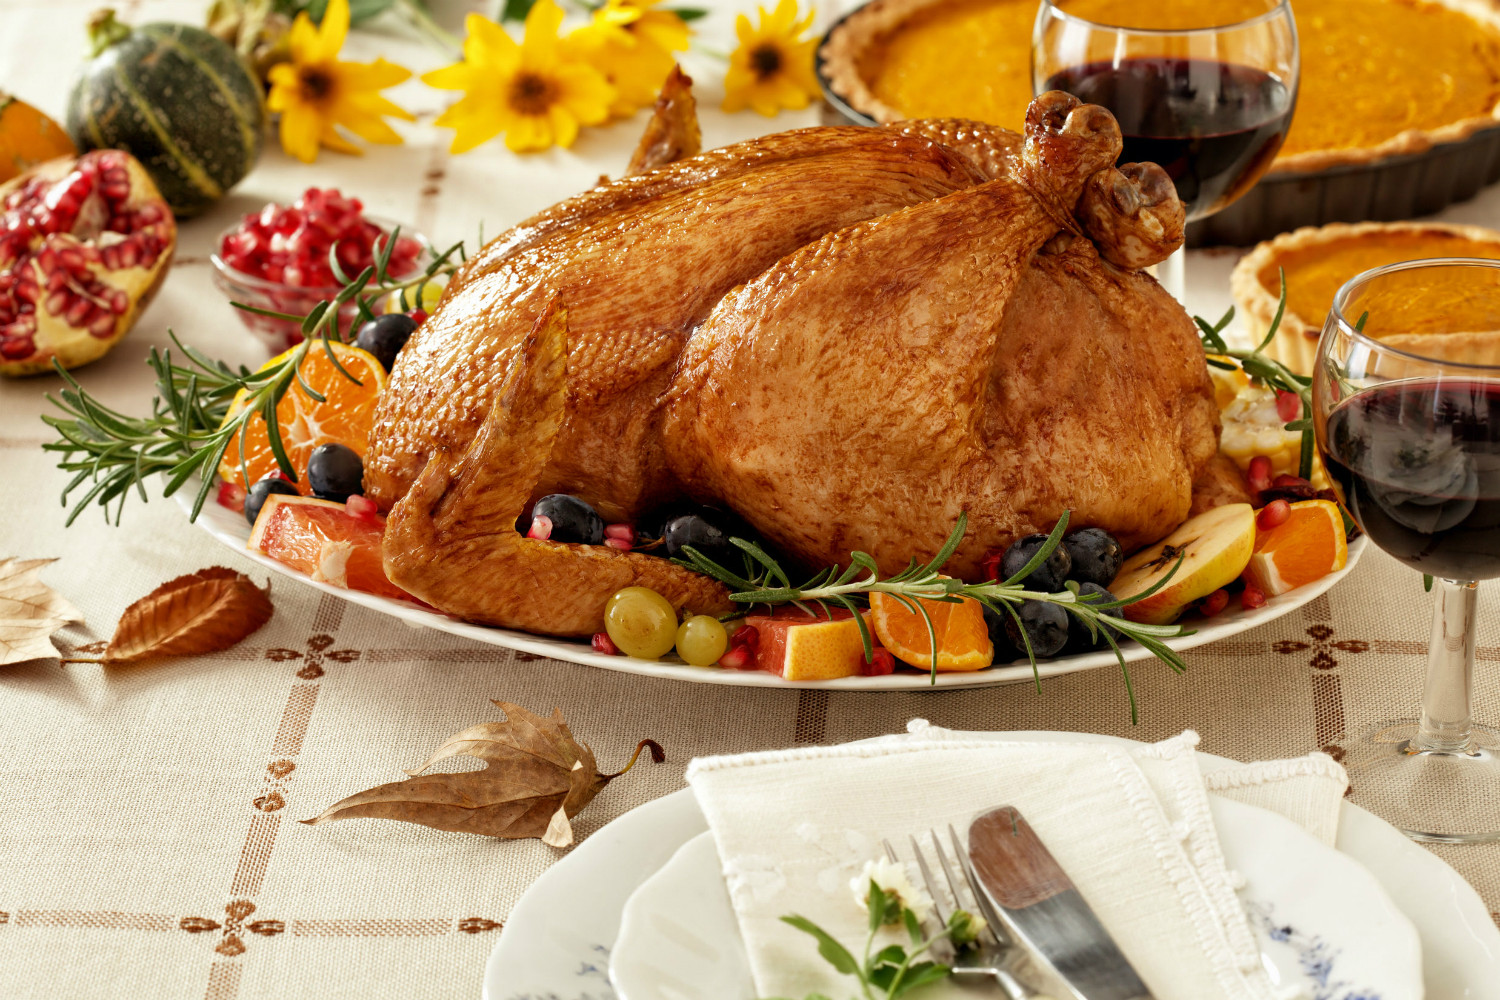 Thanksgiving Dinner Ideas Without Turkey  Food production startup promises meat without murder by